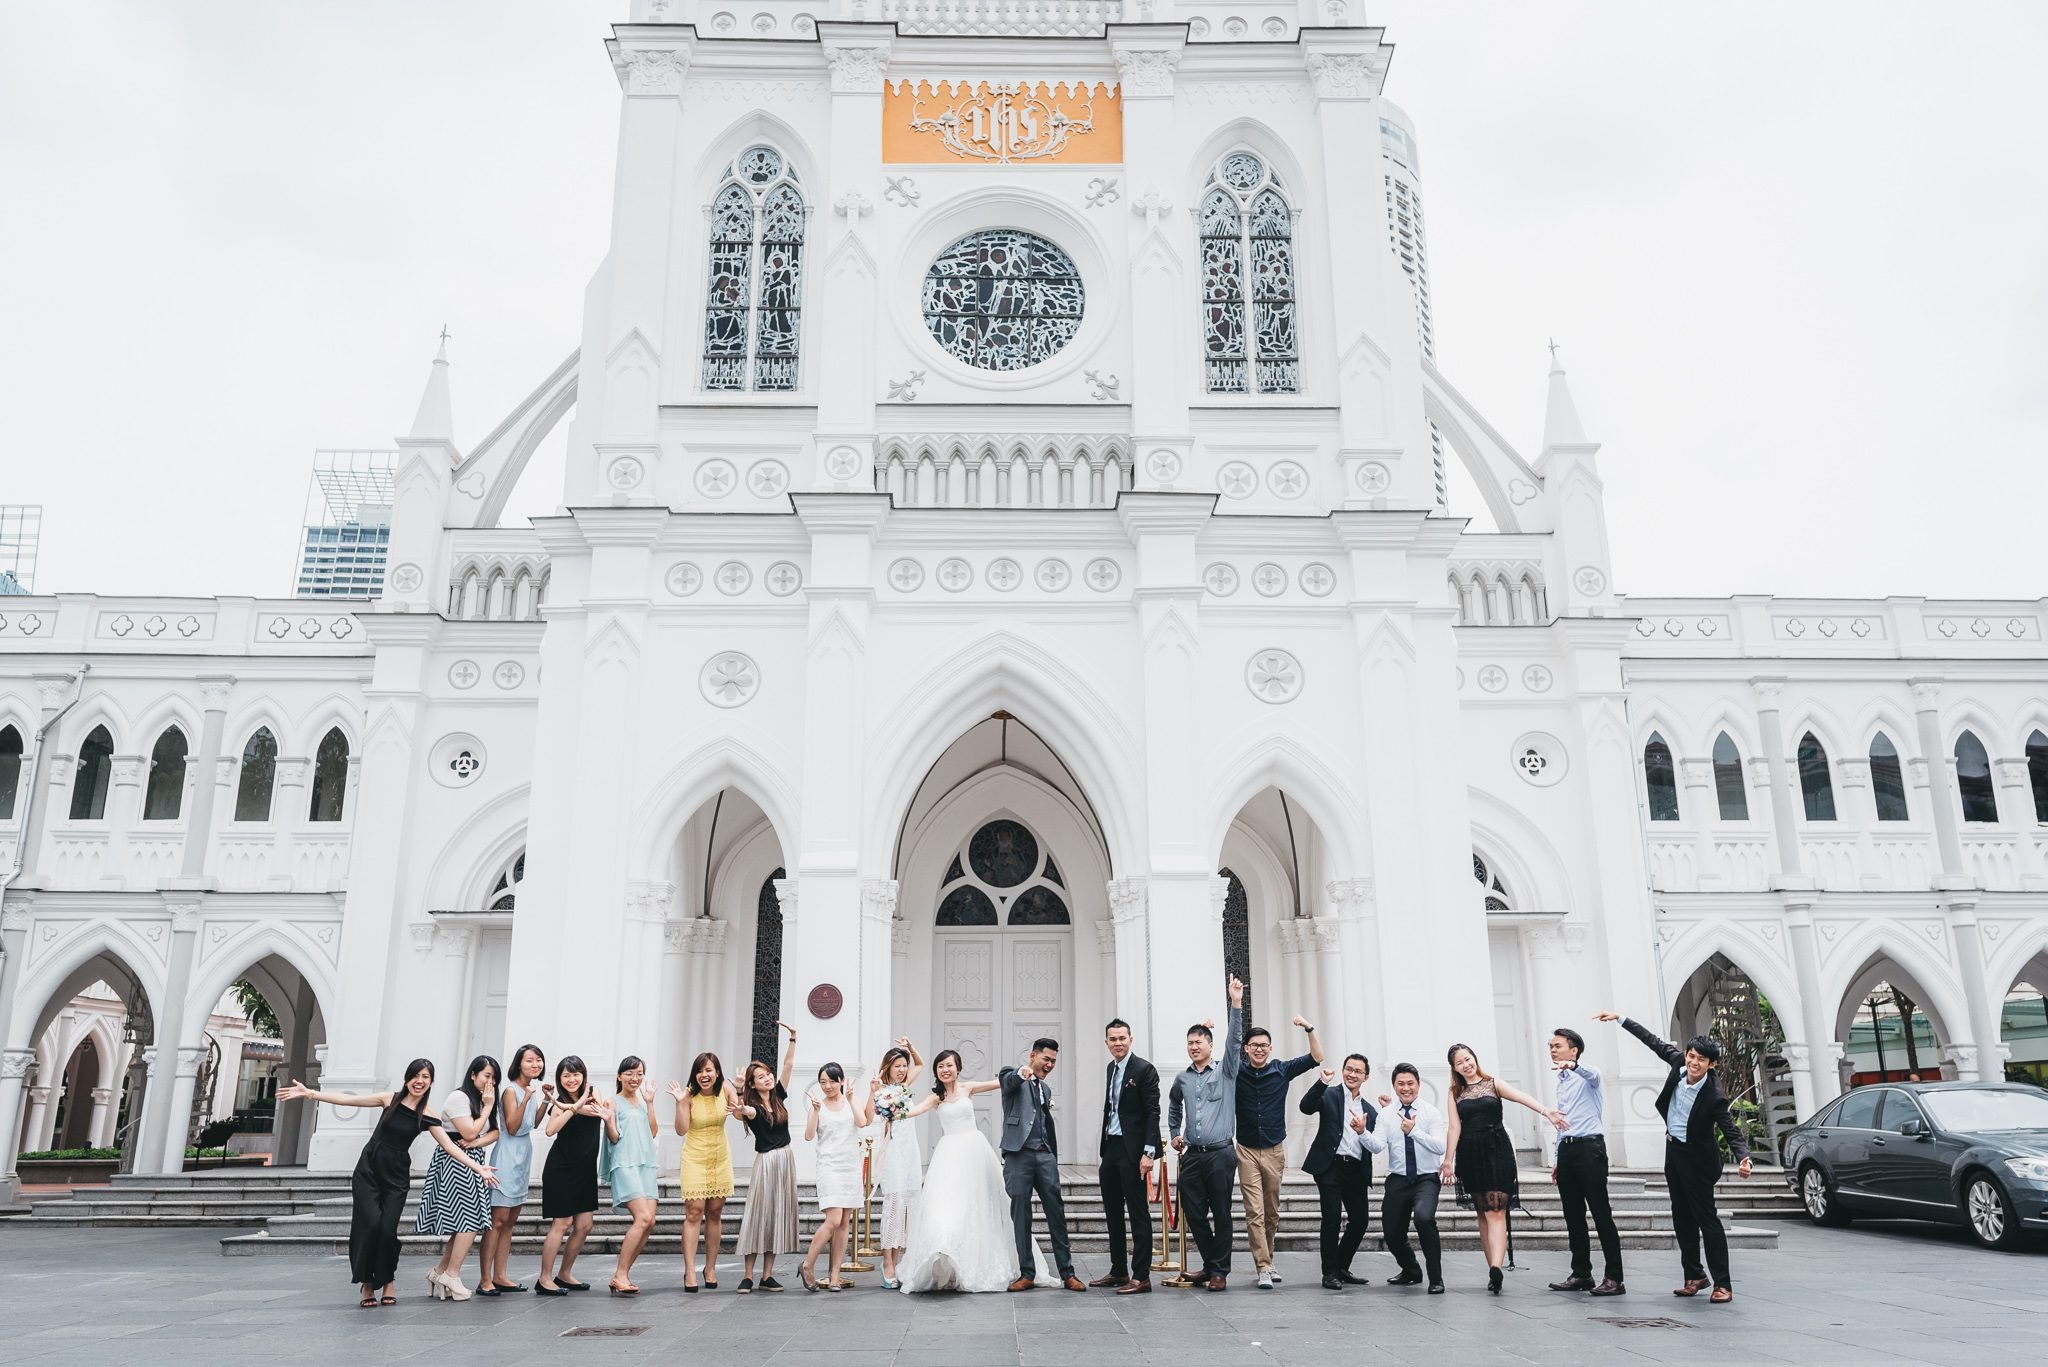 Alice & Wei Bang Wedding Day Highlights (resized for sharing) - 098.jpg